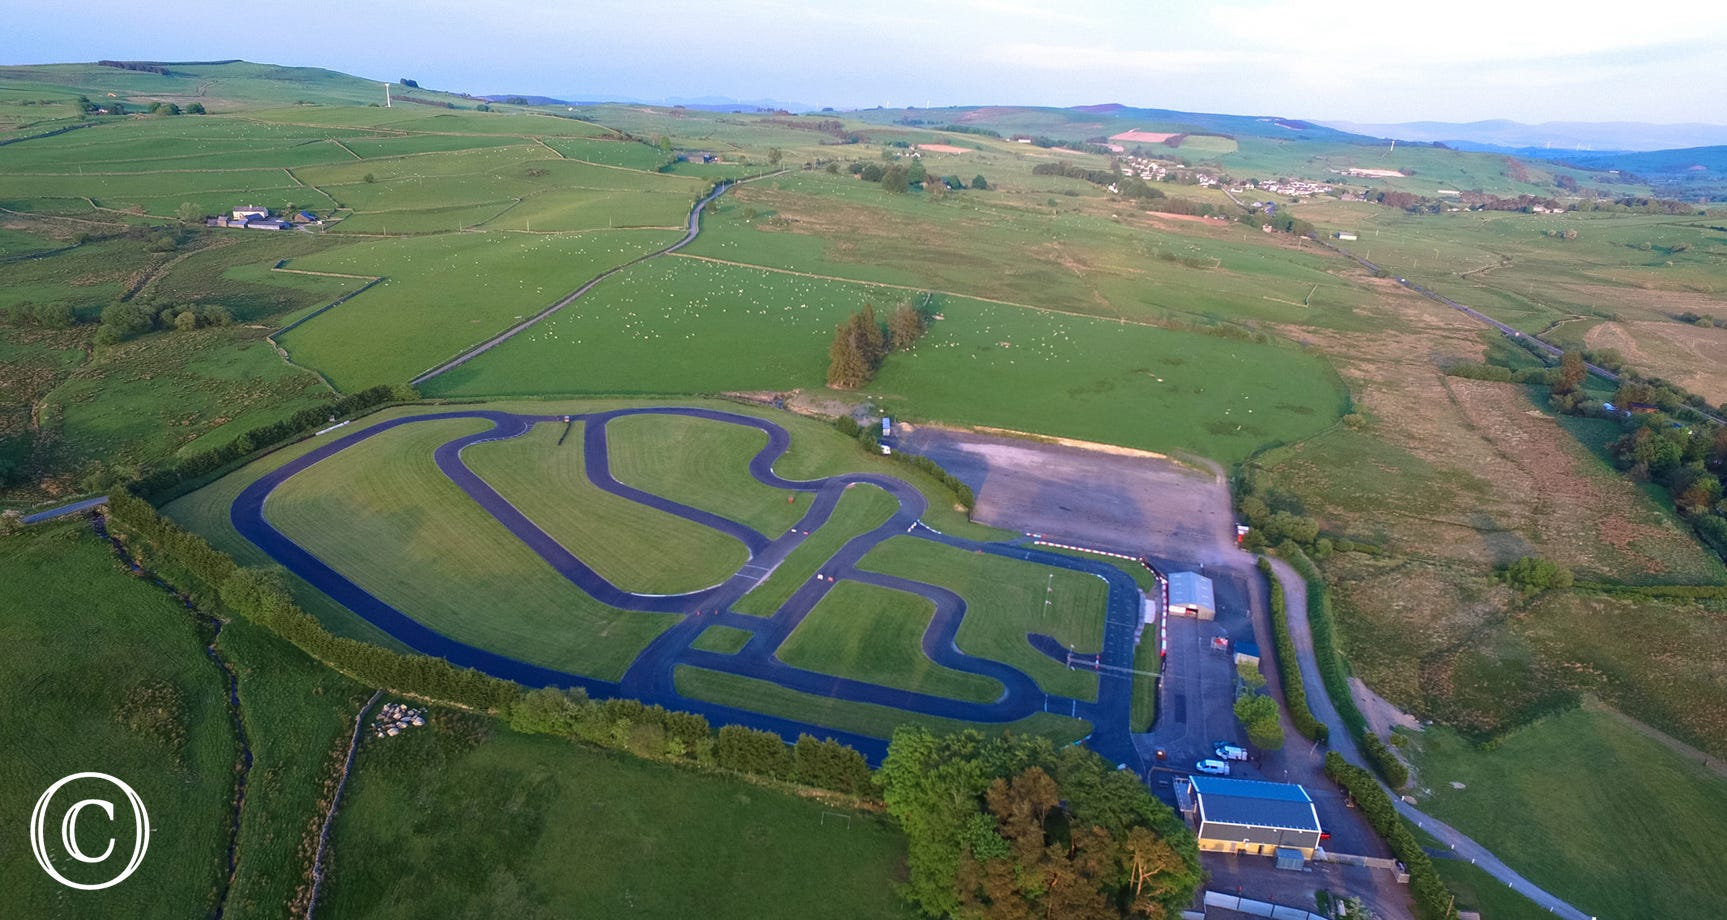 Championship go-karting circuit at Cerrig y Drudion to get the adrenalin flowing